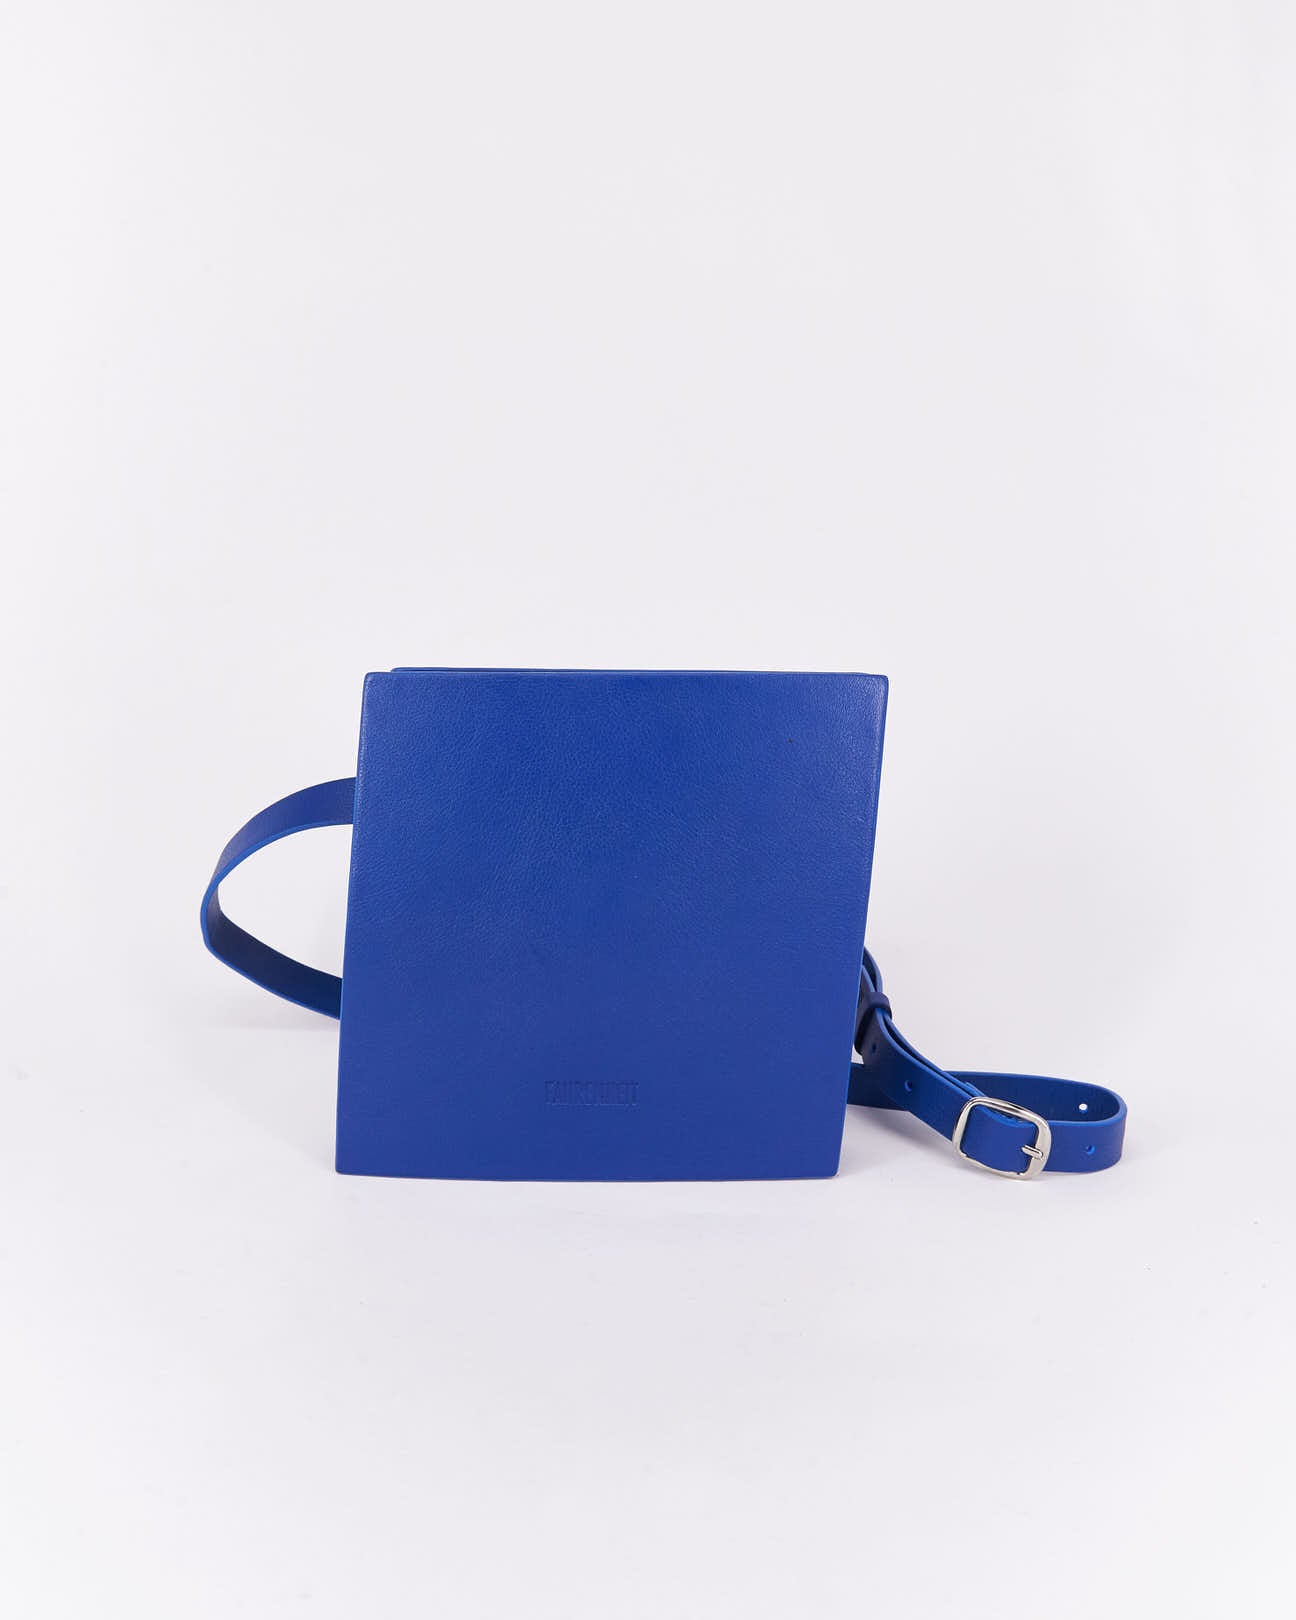 Bag451-blue-leather-Fahrenheit-handmade-localdesigners-Nuovum